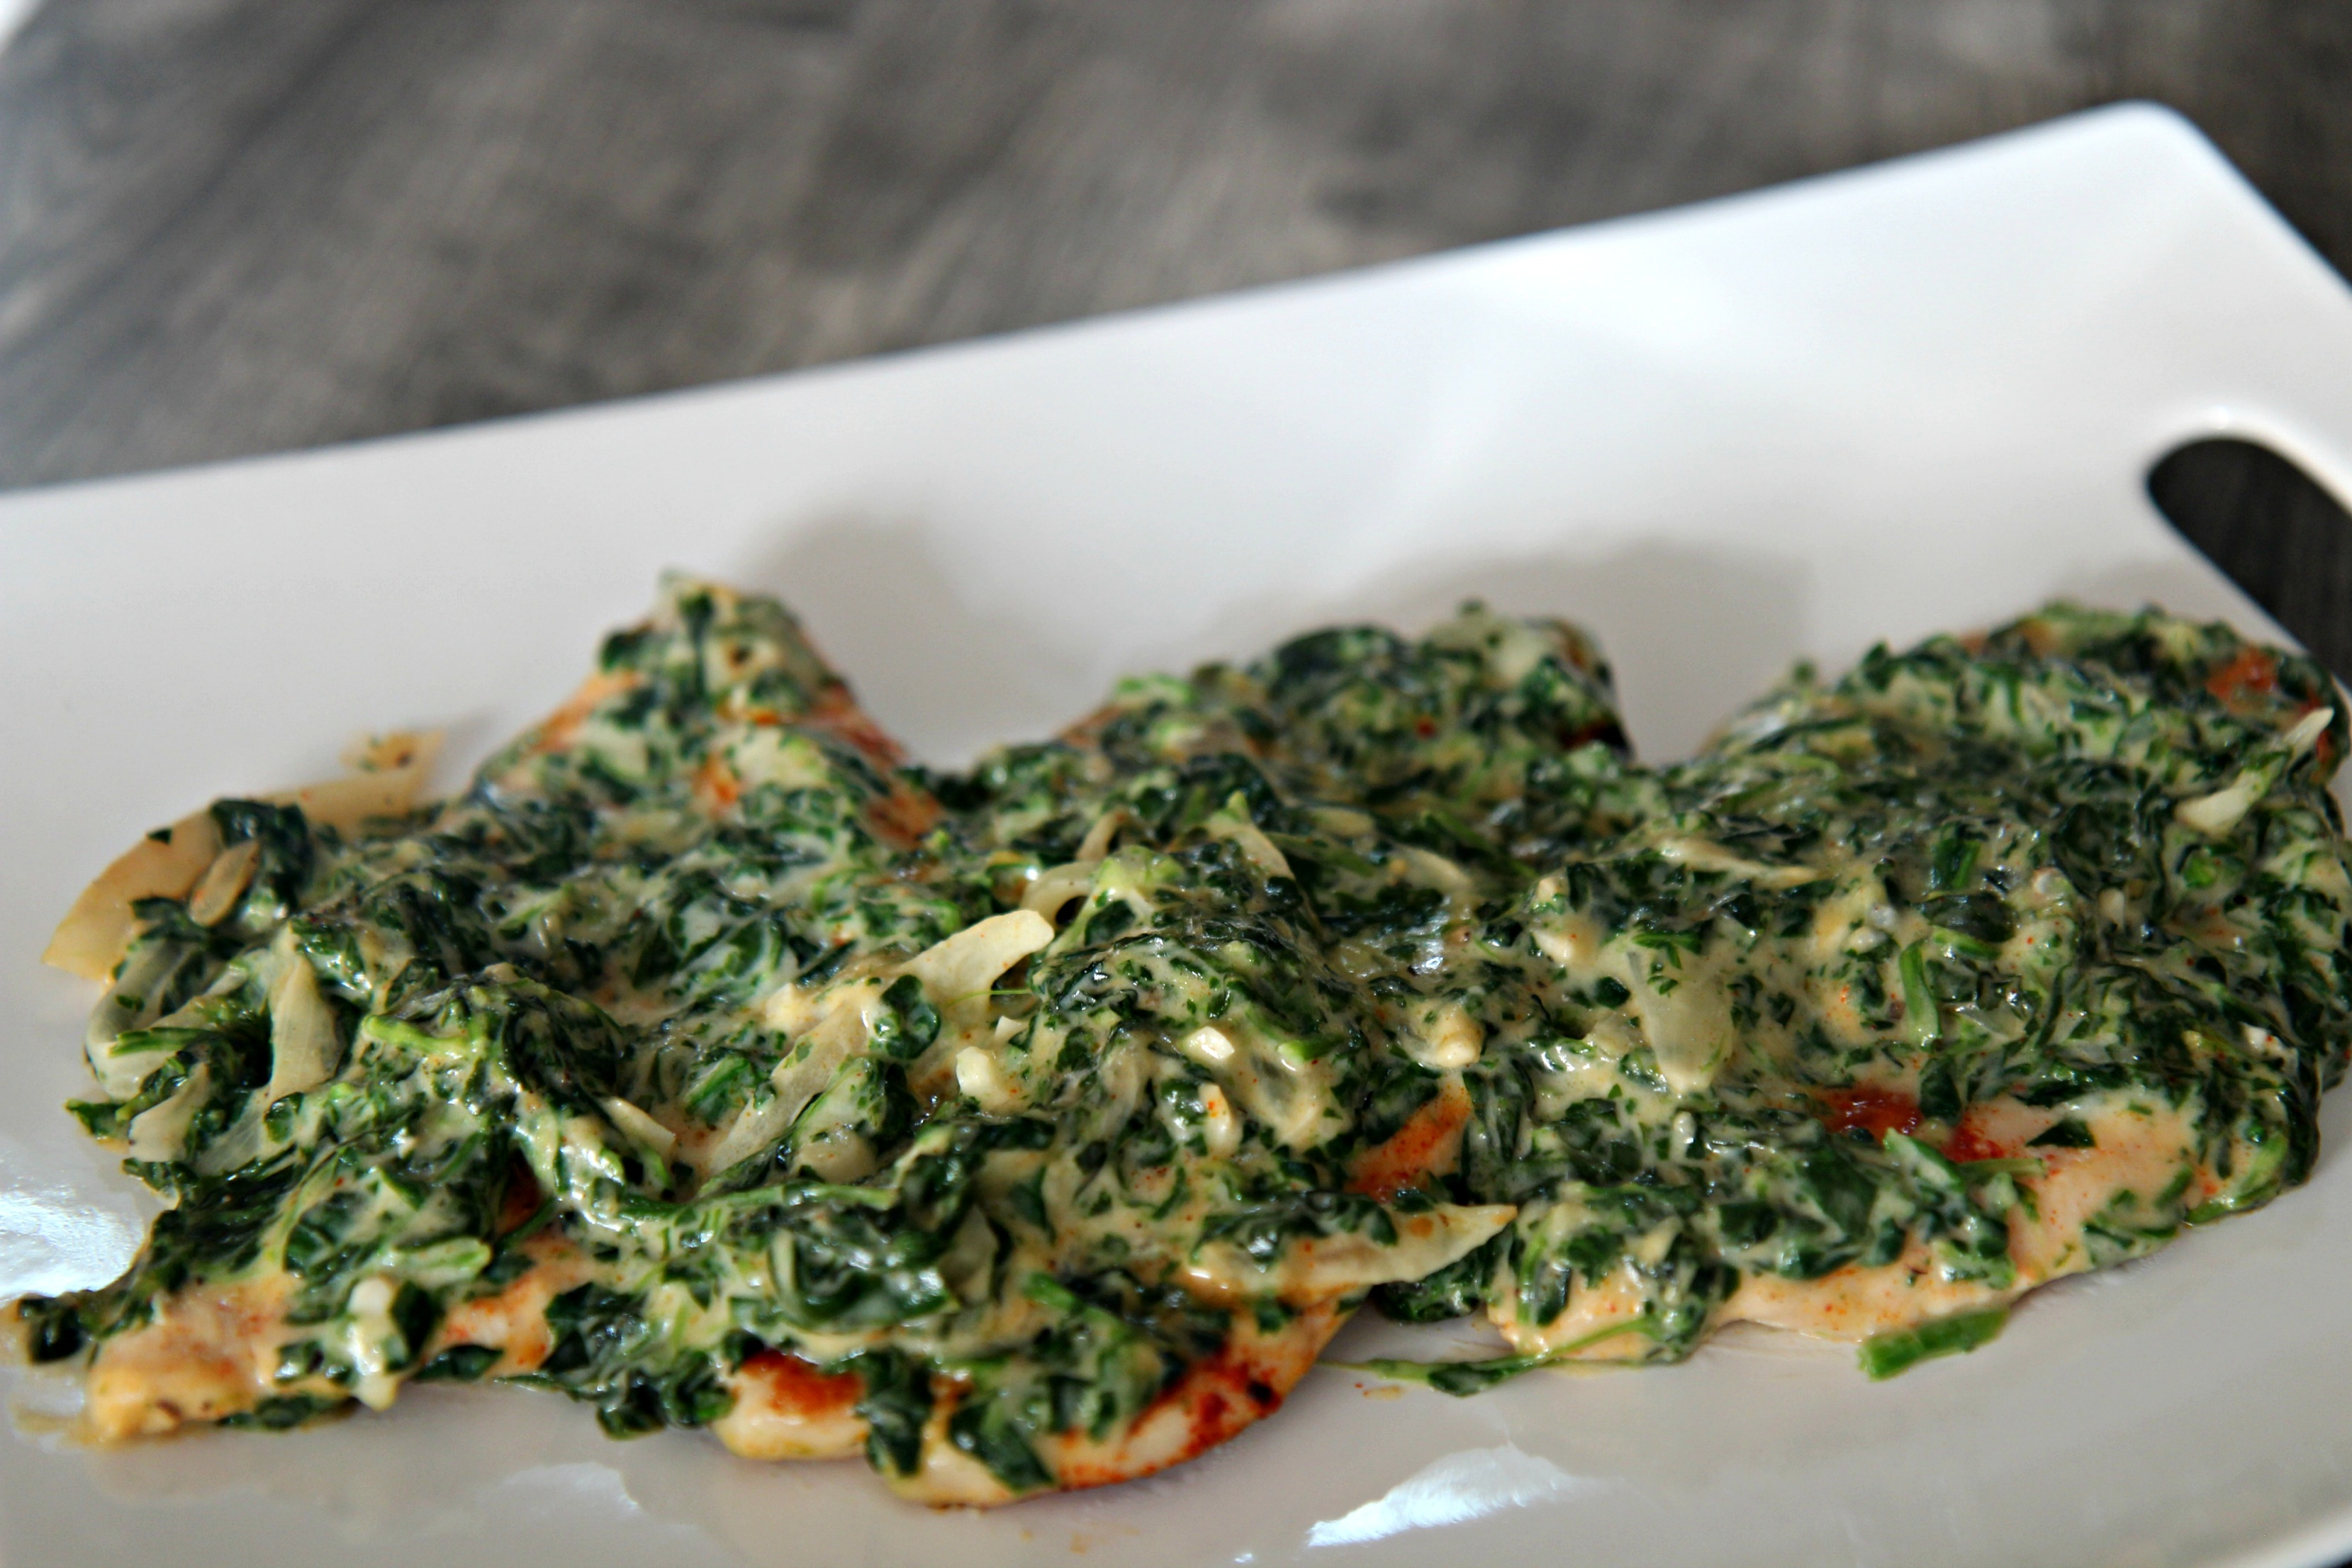 Tender and juicy chicken topped with delicious creamed spinach